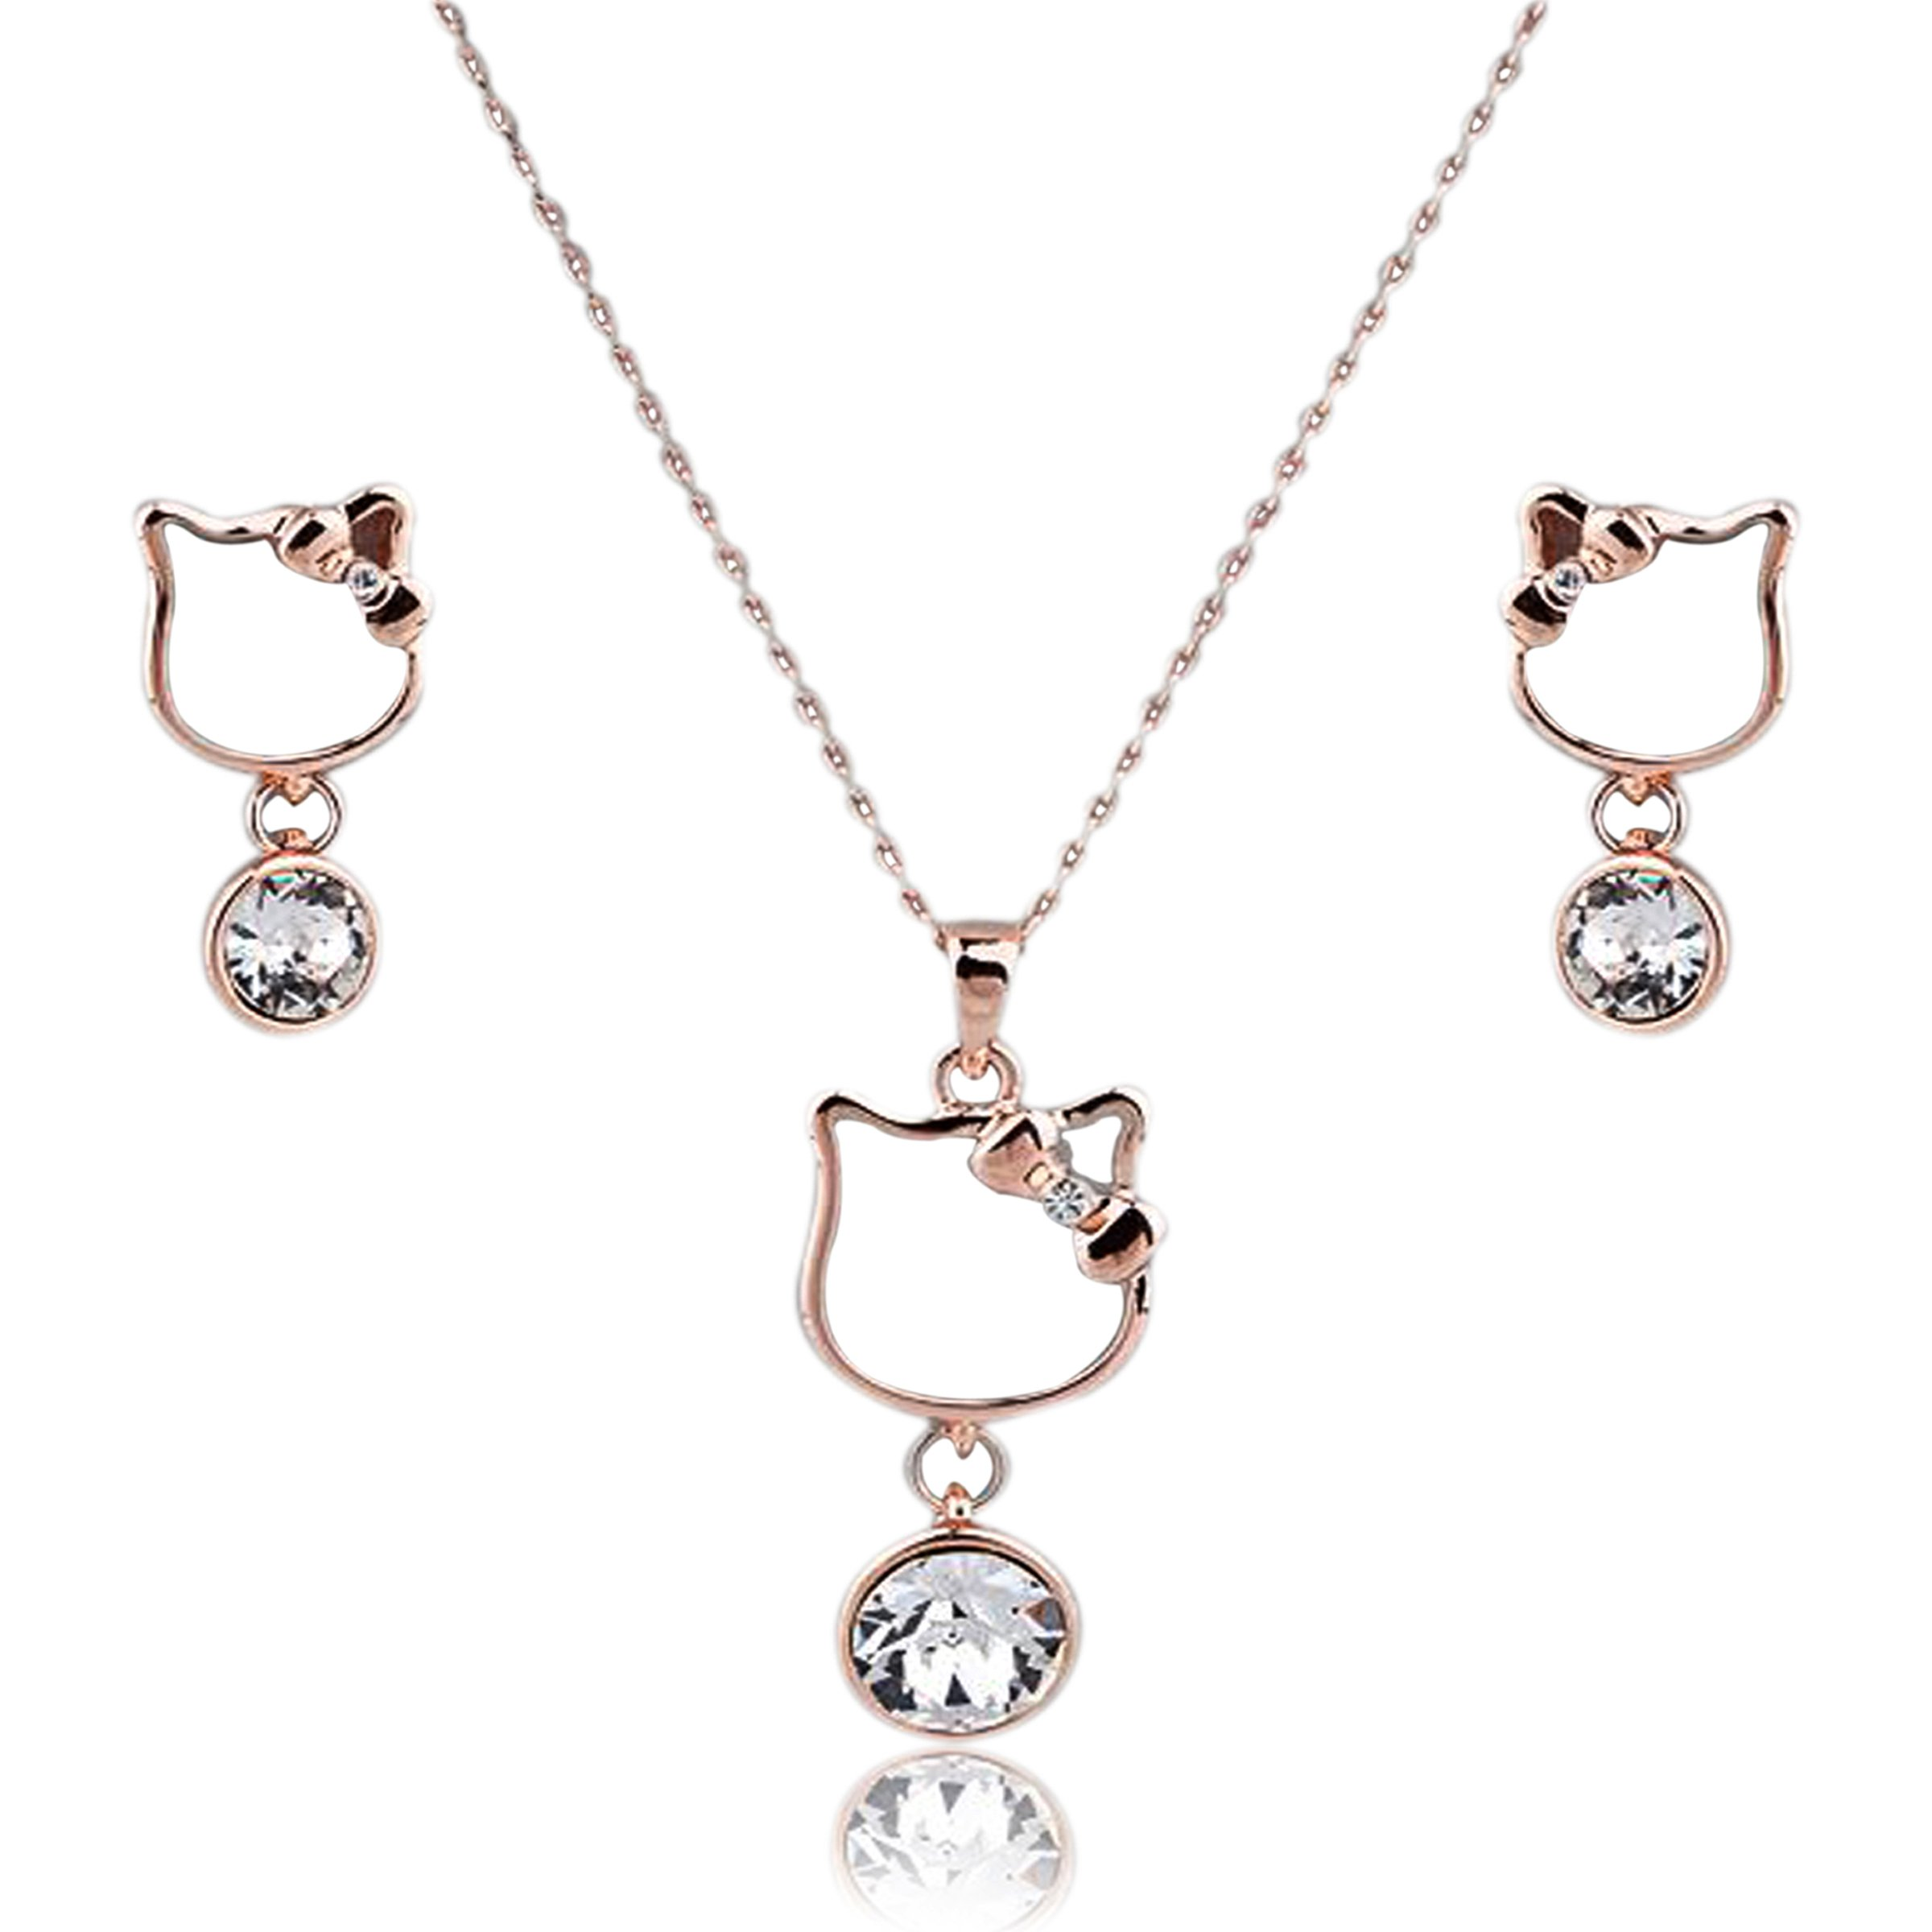 Mall of Style Hello Kitty Necklace Earrings Jewelry Set in Rose Gold